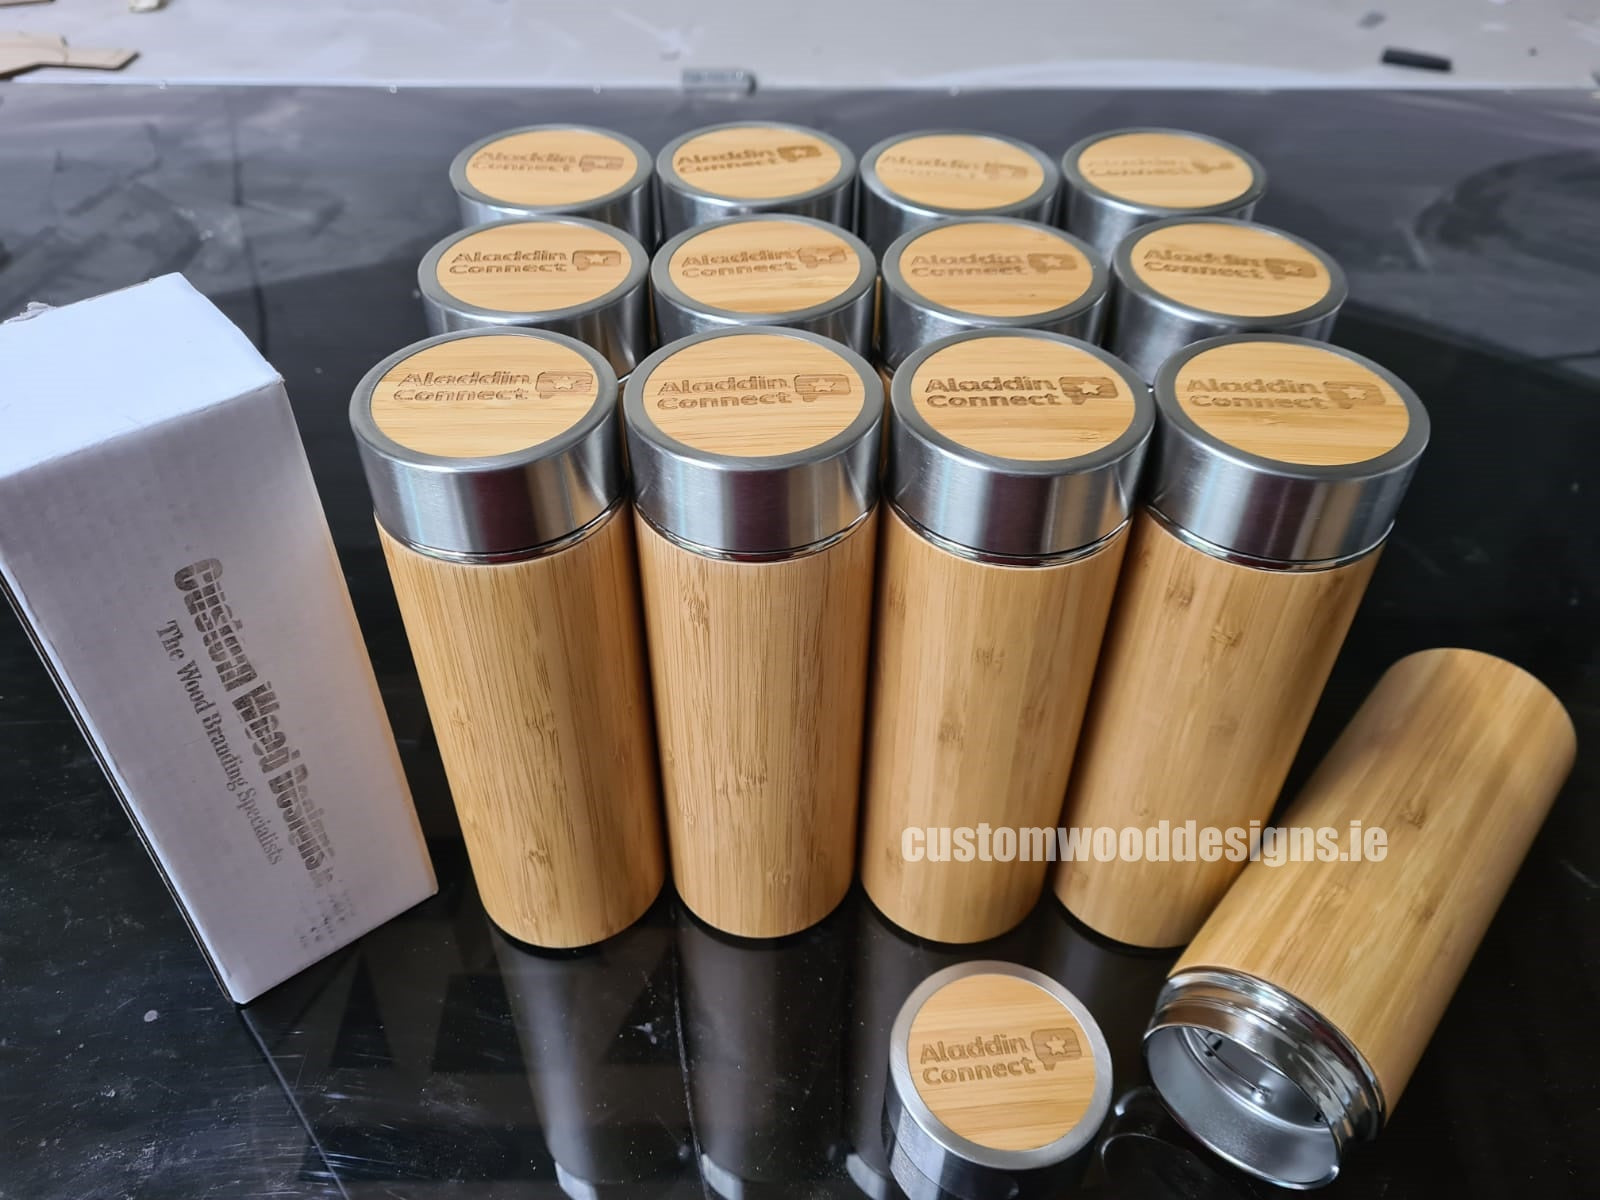 Bamboo cups ireland branded cups ireland sustainable gifys ireland wooden gifts Custom Wood Designs.ie